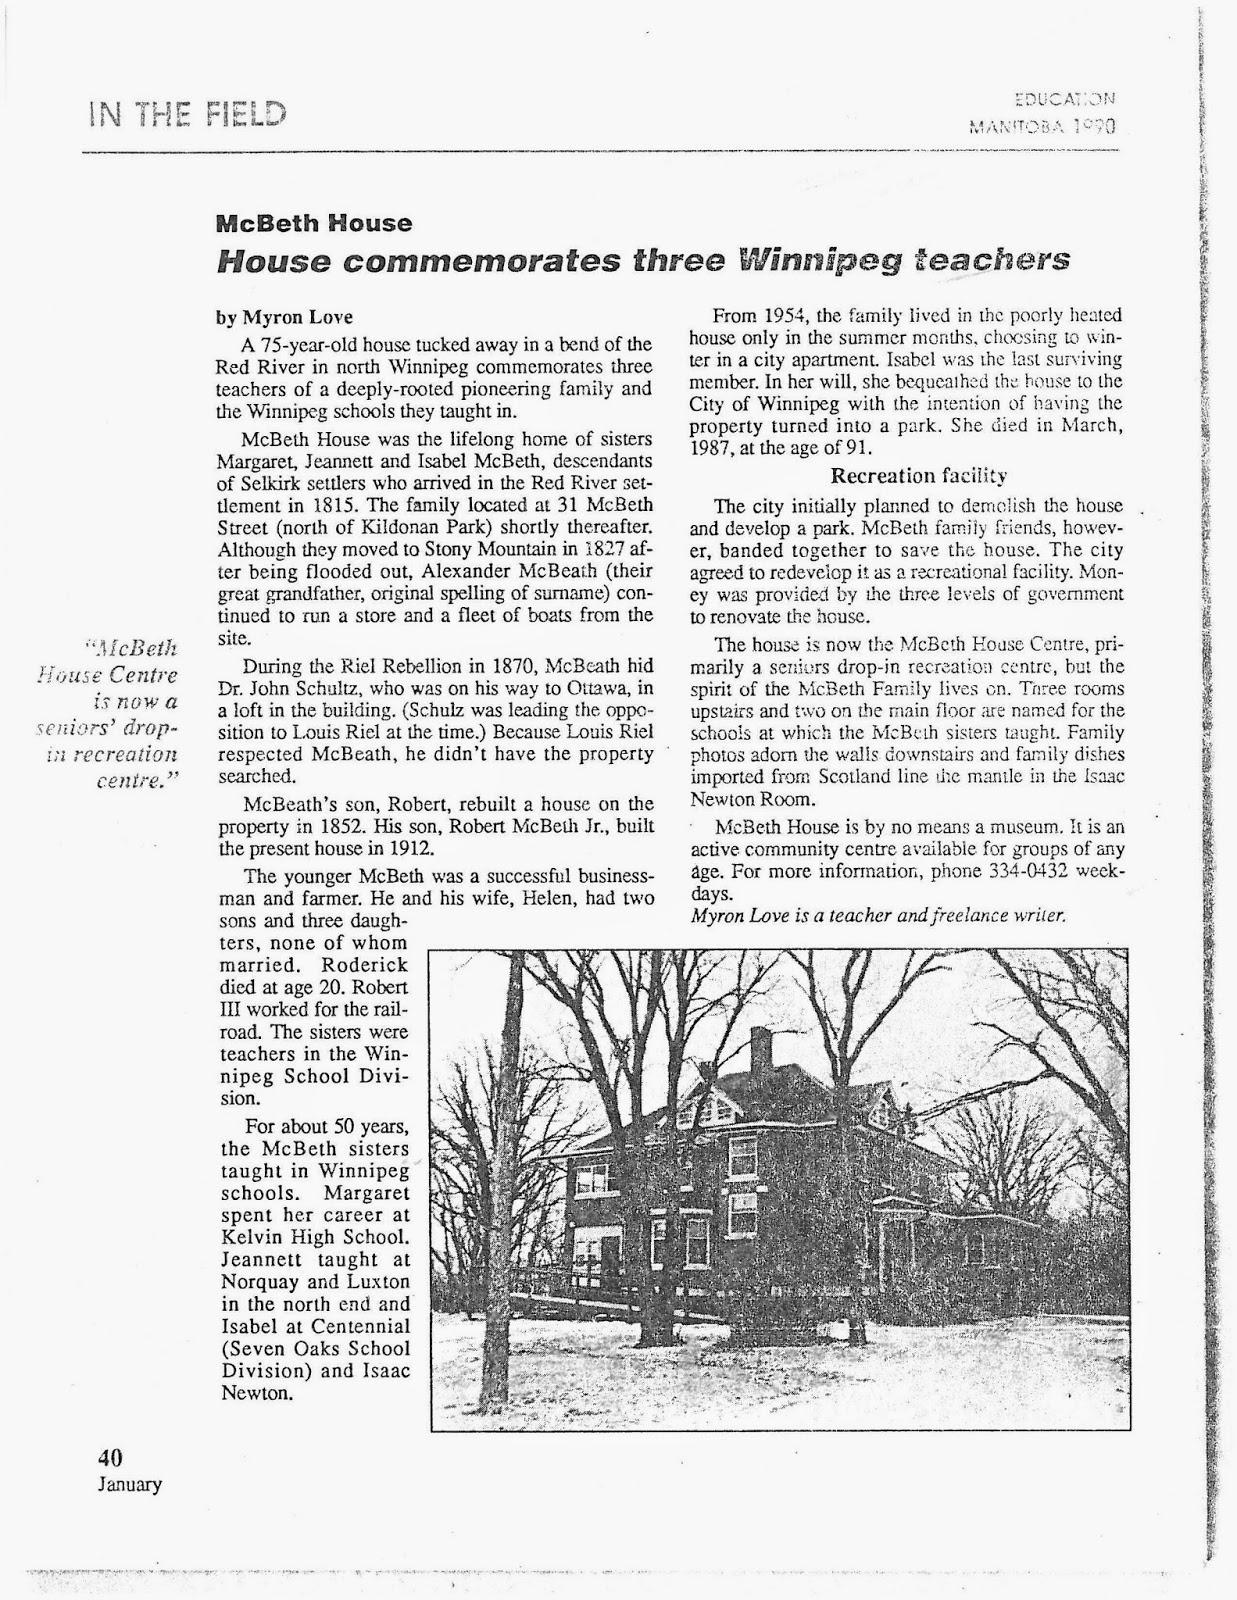 House commemorates three Winnipeg Teachers - click for article PDF